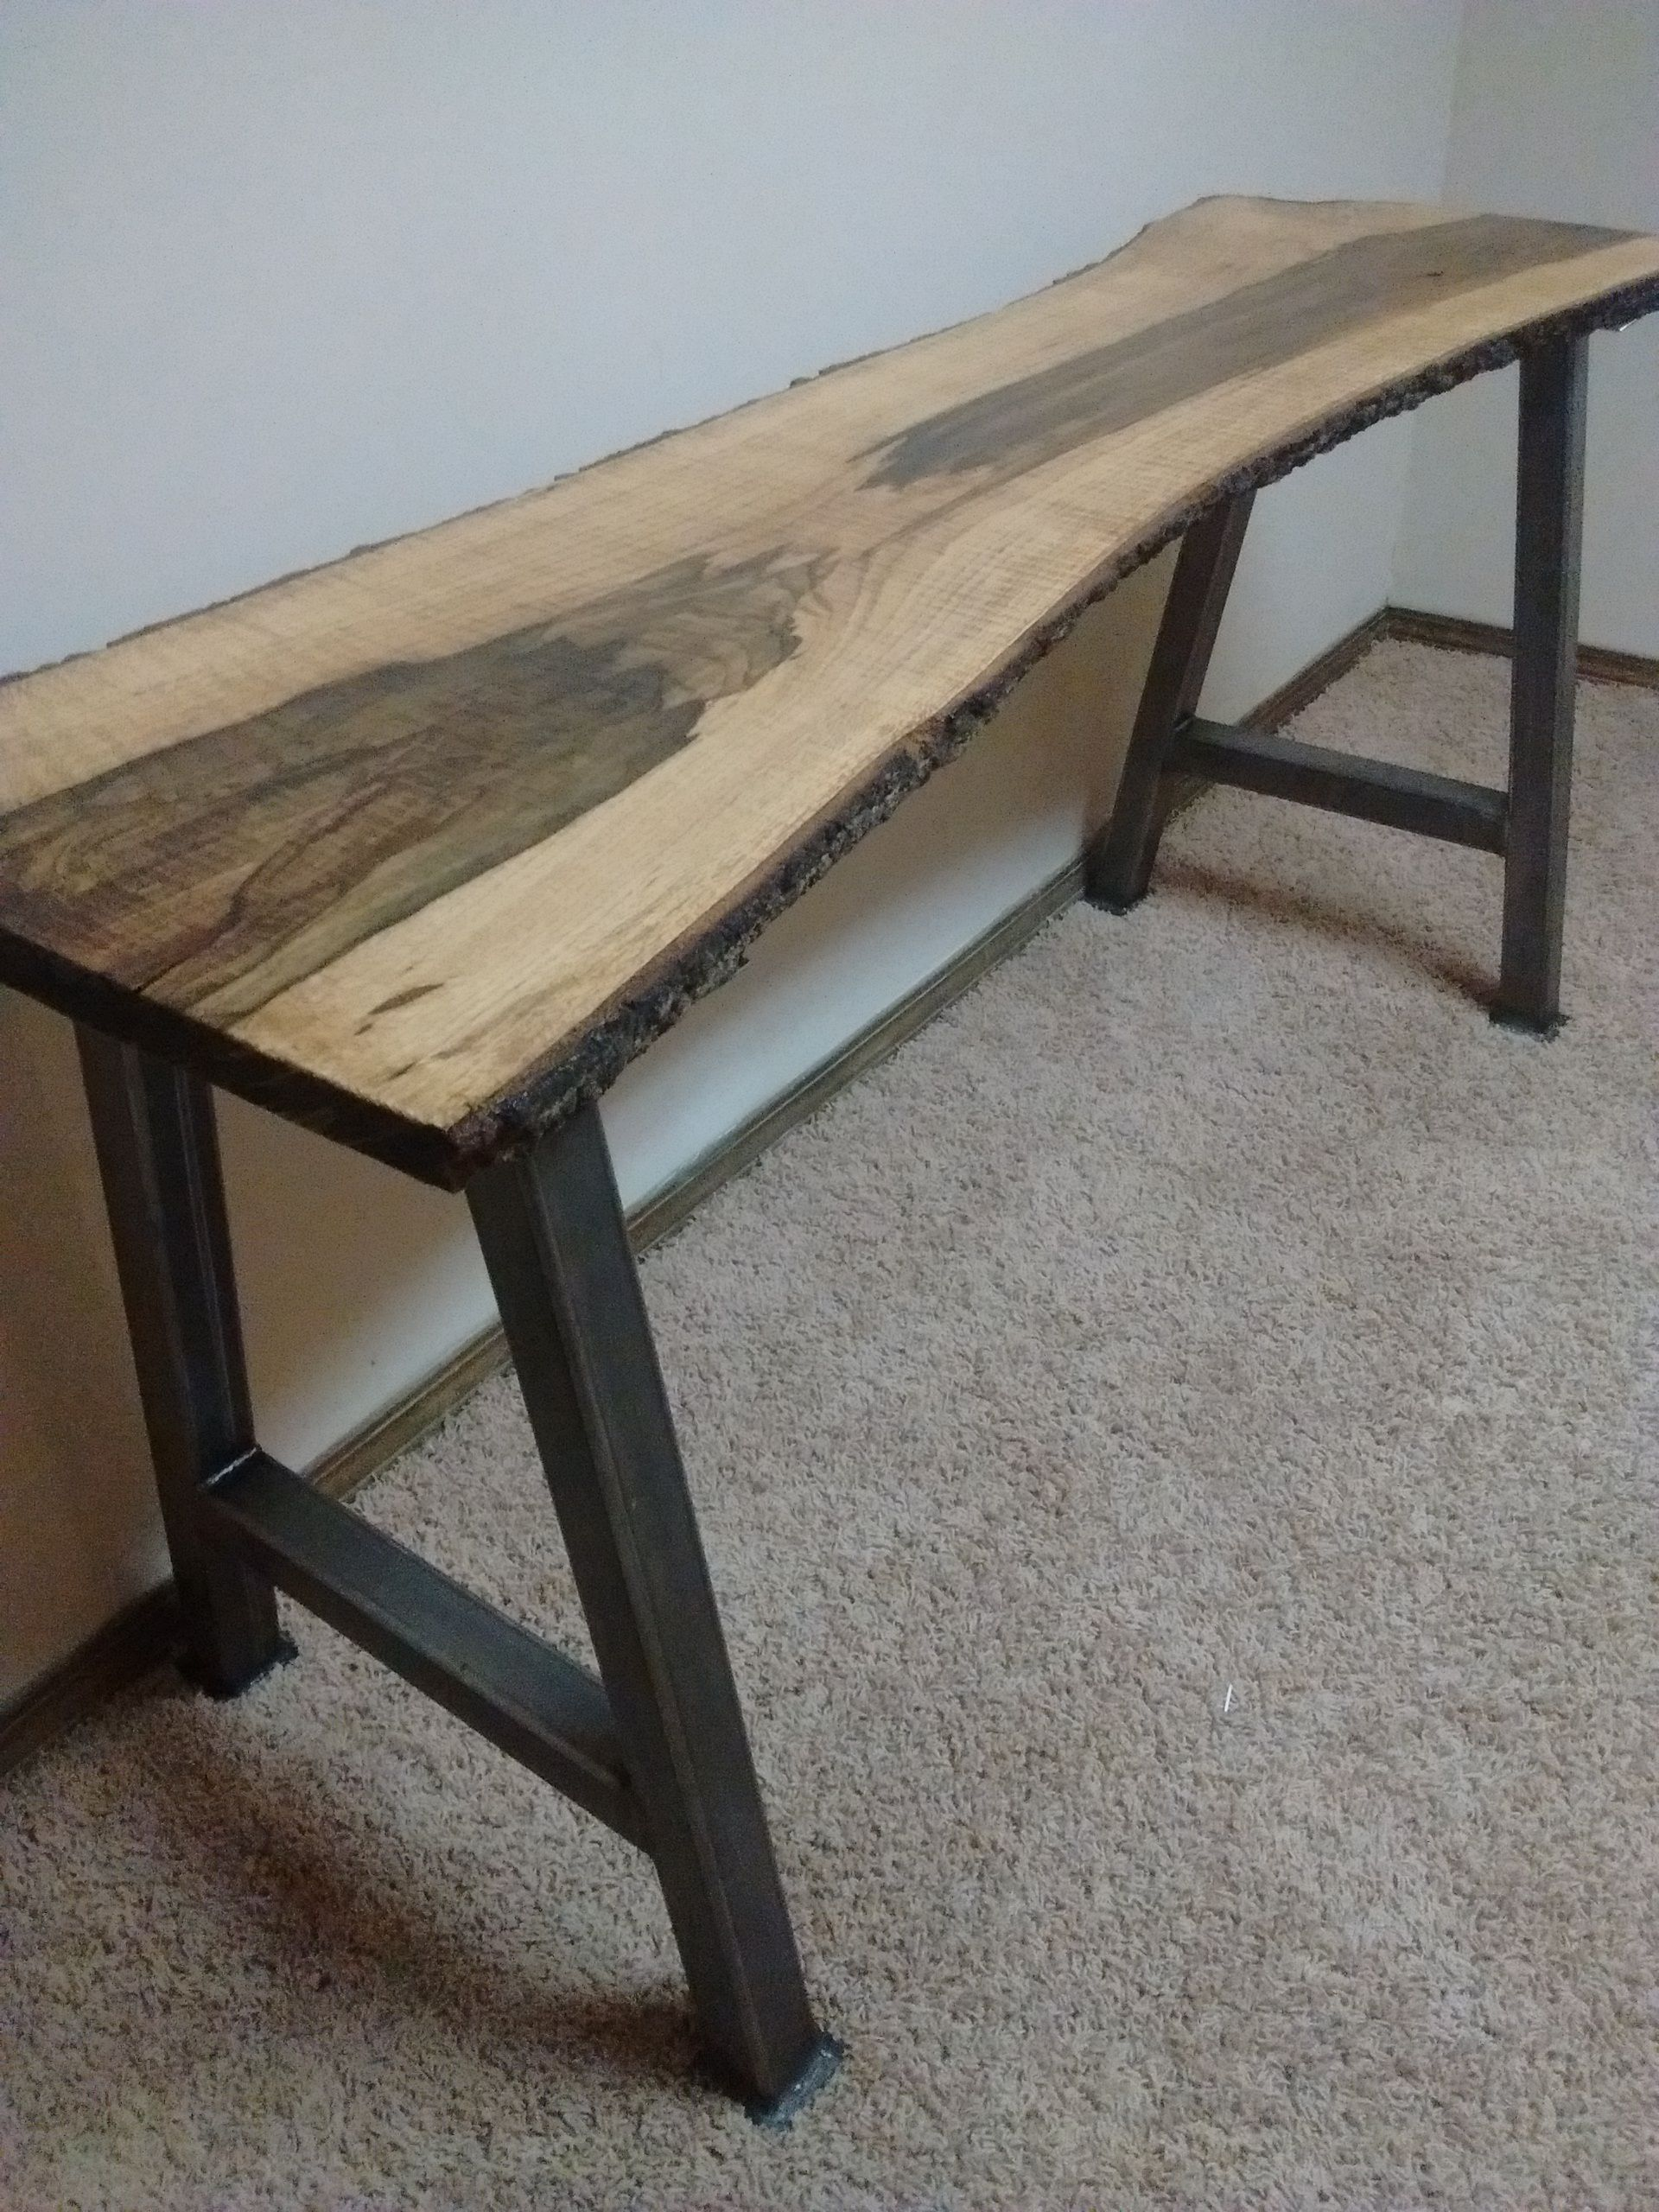 Buy Handmade Live Edge Furniture, Live Edge Blackjack Oak Desk/Table ...